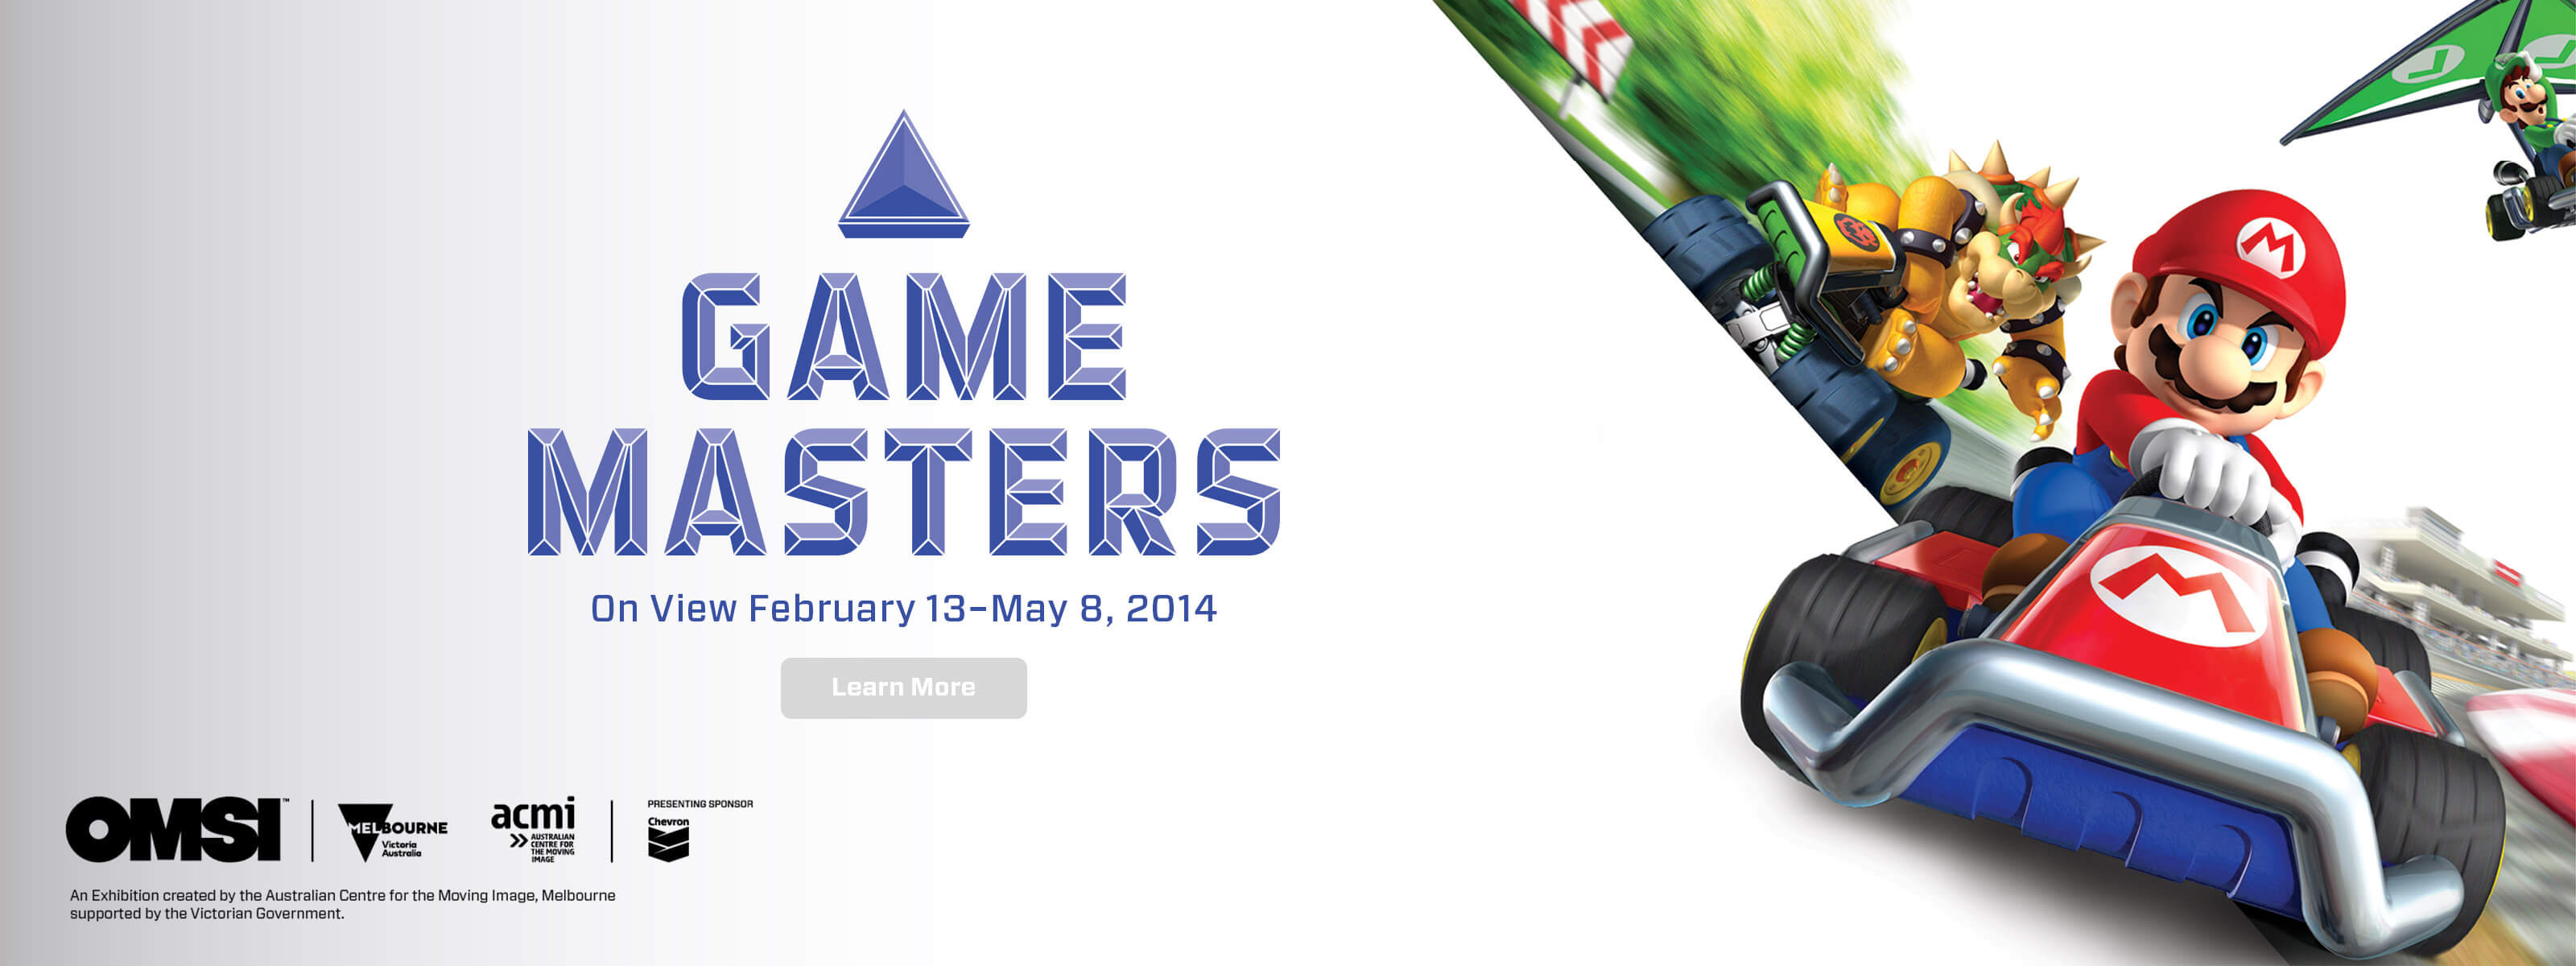 Gamemasters - On View Feb. 13 - May 8